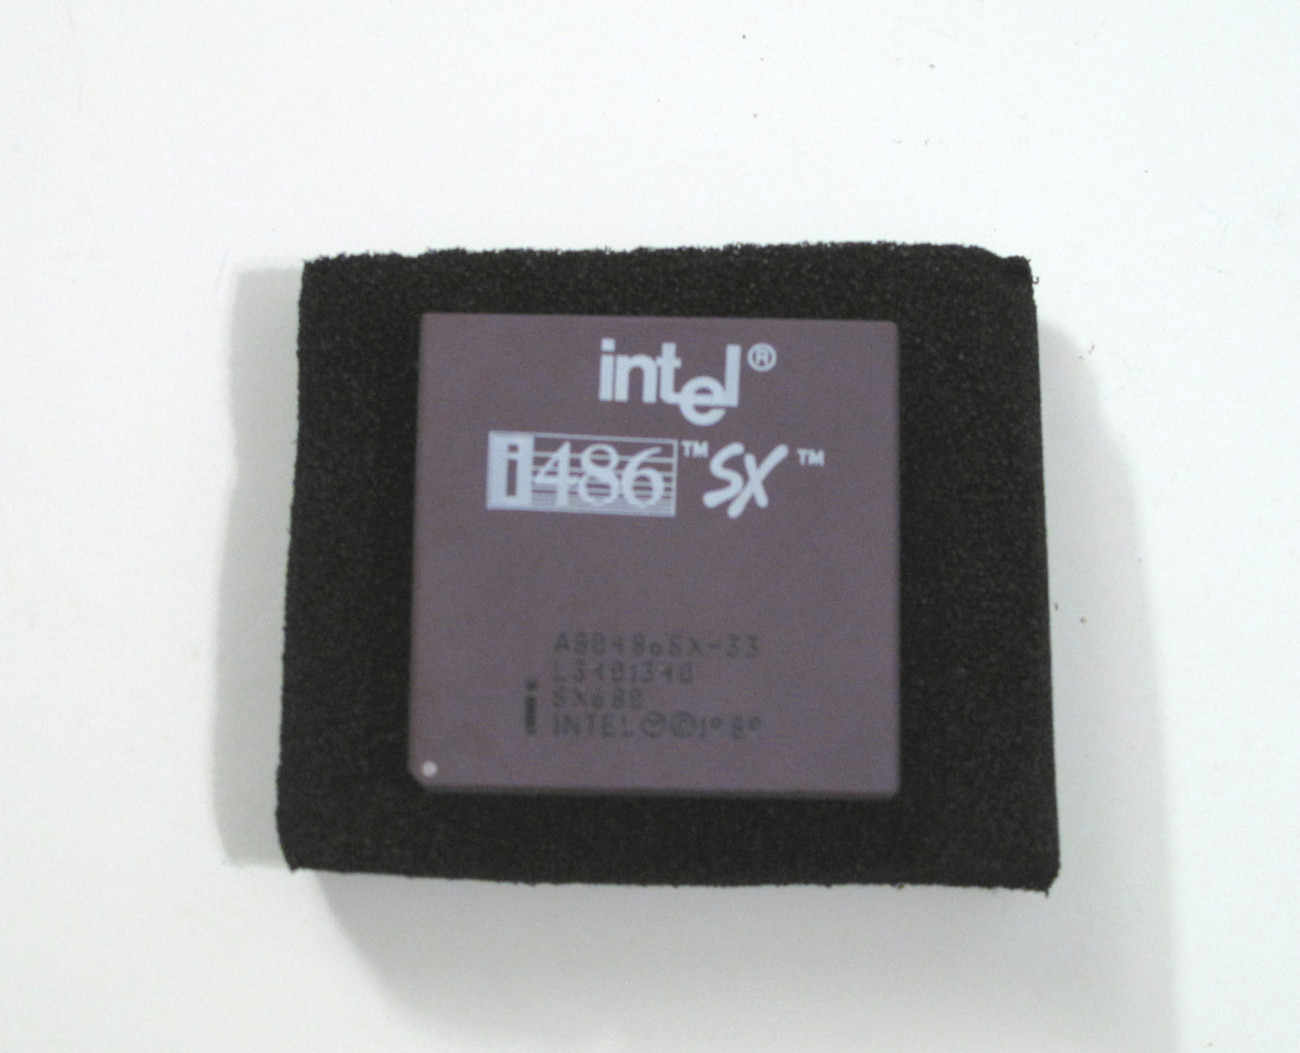 Primary image for Intel Vintage CPU Processor i486SX A80486SX-33